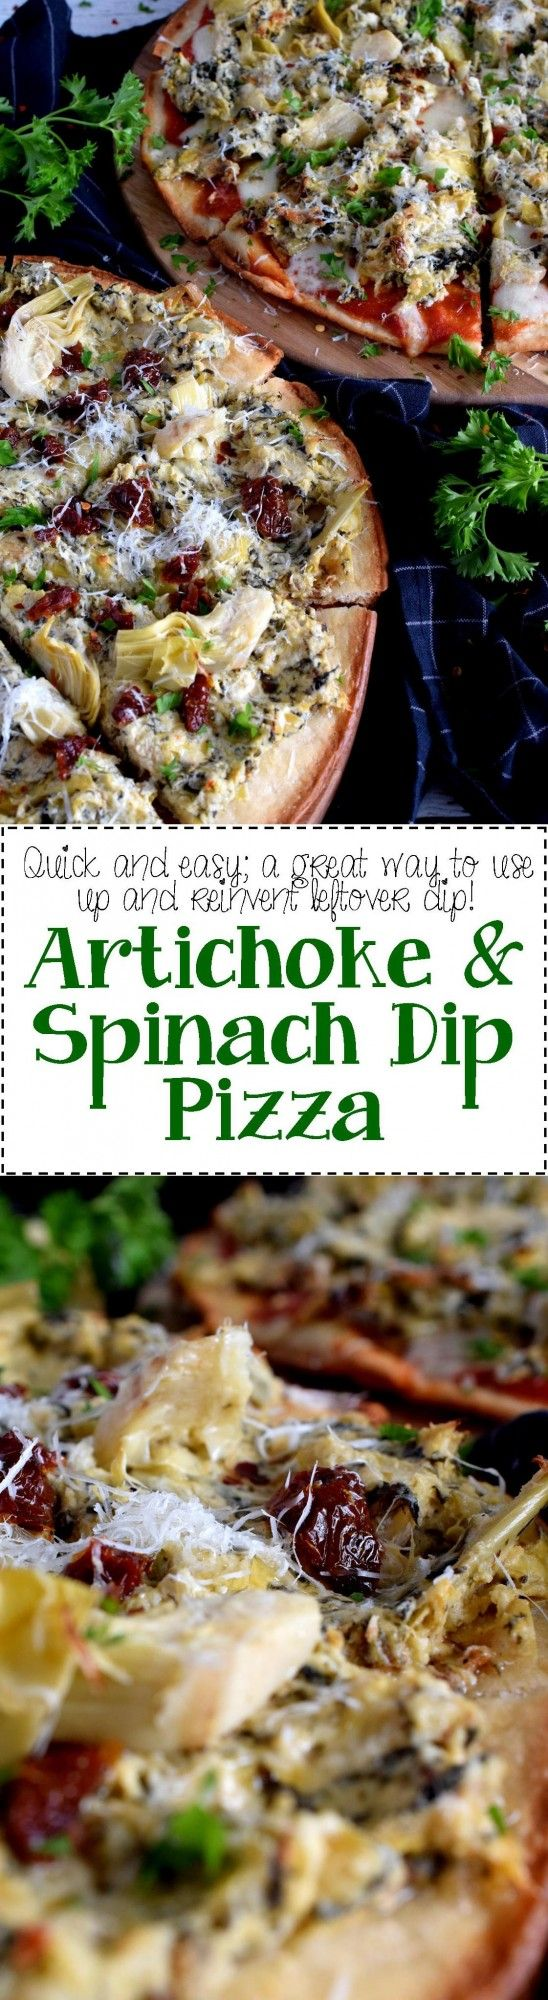 Artichoke and Spinach Dip Pizza - Lord Byron's Kitchen